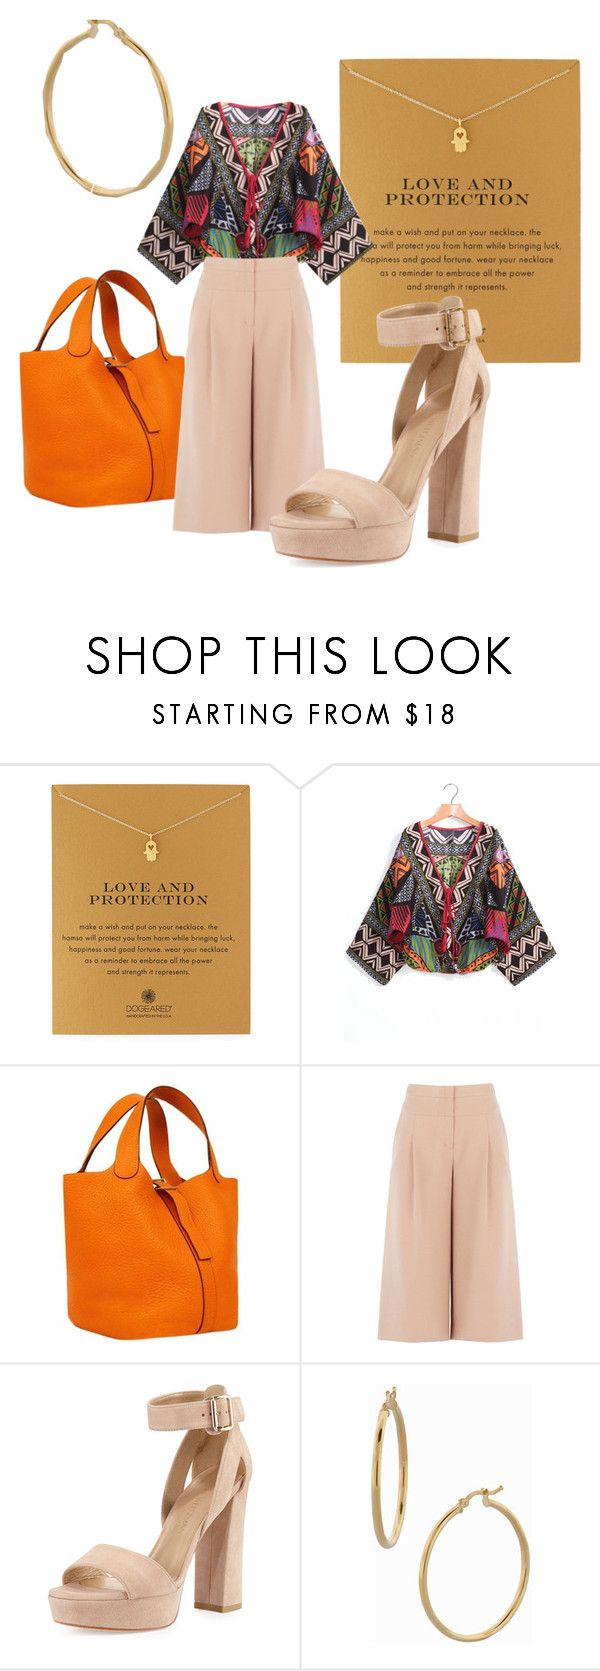 """Casual Dates & Dinners"" by timekawash ❤ liked on Polyvore featuring Dogeared, BCBGMAXAZRIA, Stuart Weitzman and Bony Levy"